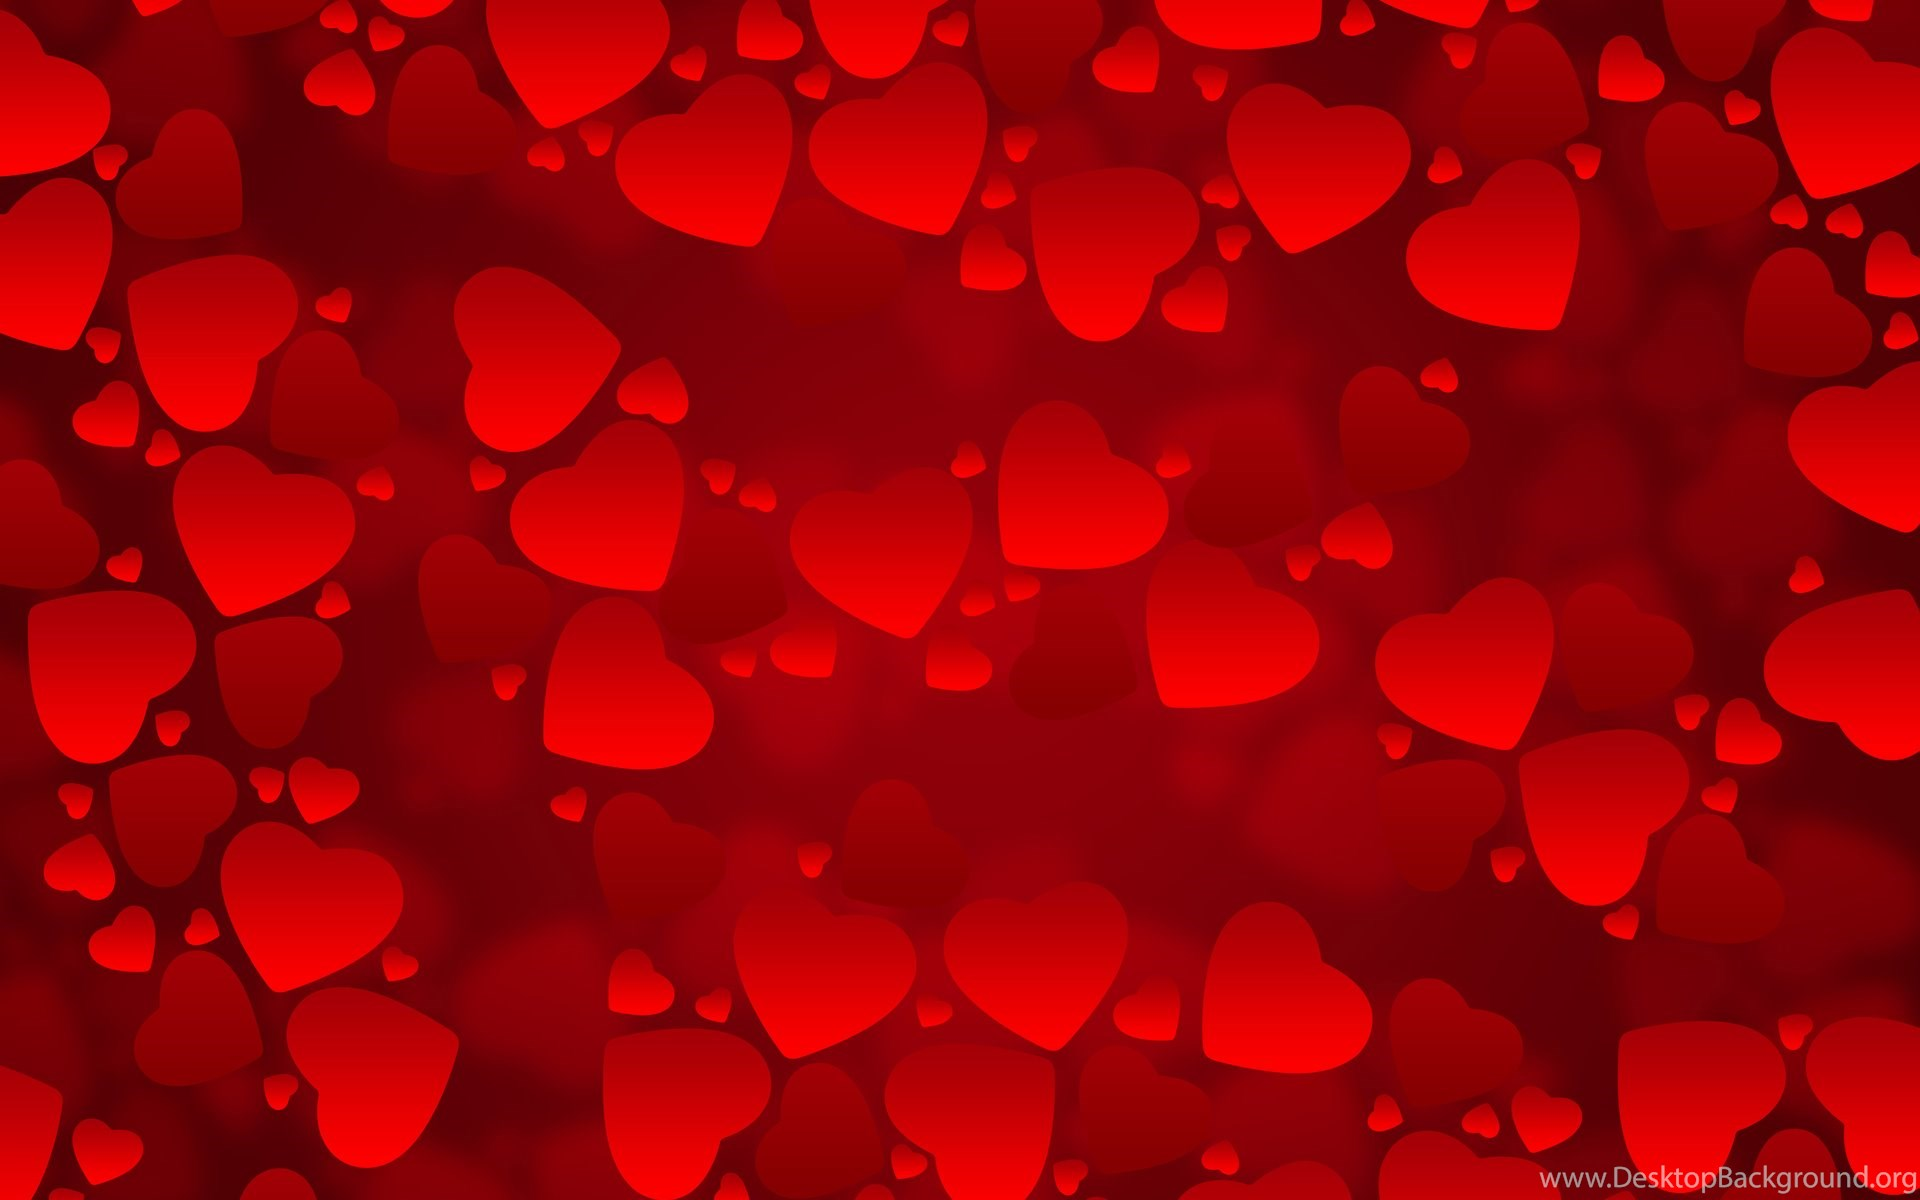 Red Love Wallpaper Hd : Love, Heart, Red, Romance HD Wallpapers Desktop Background